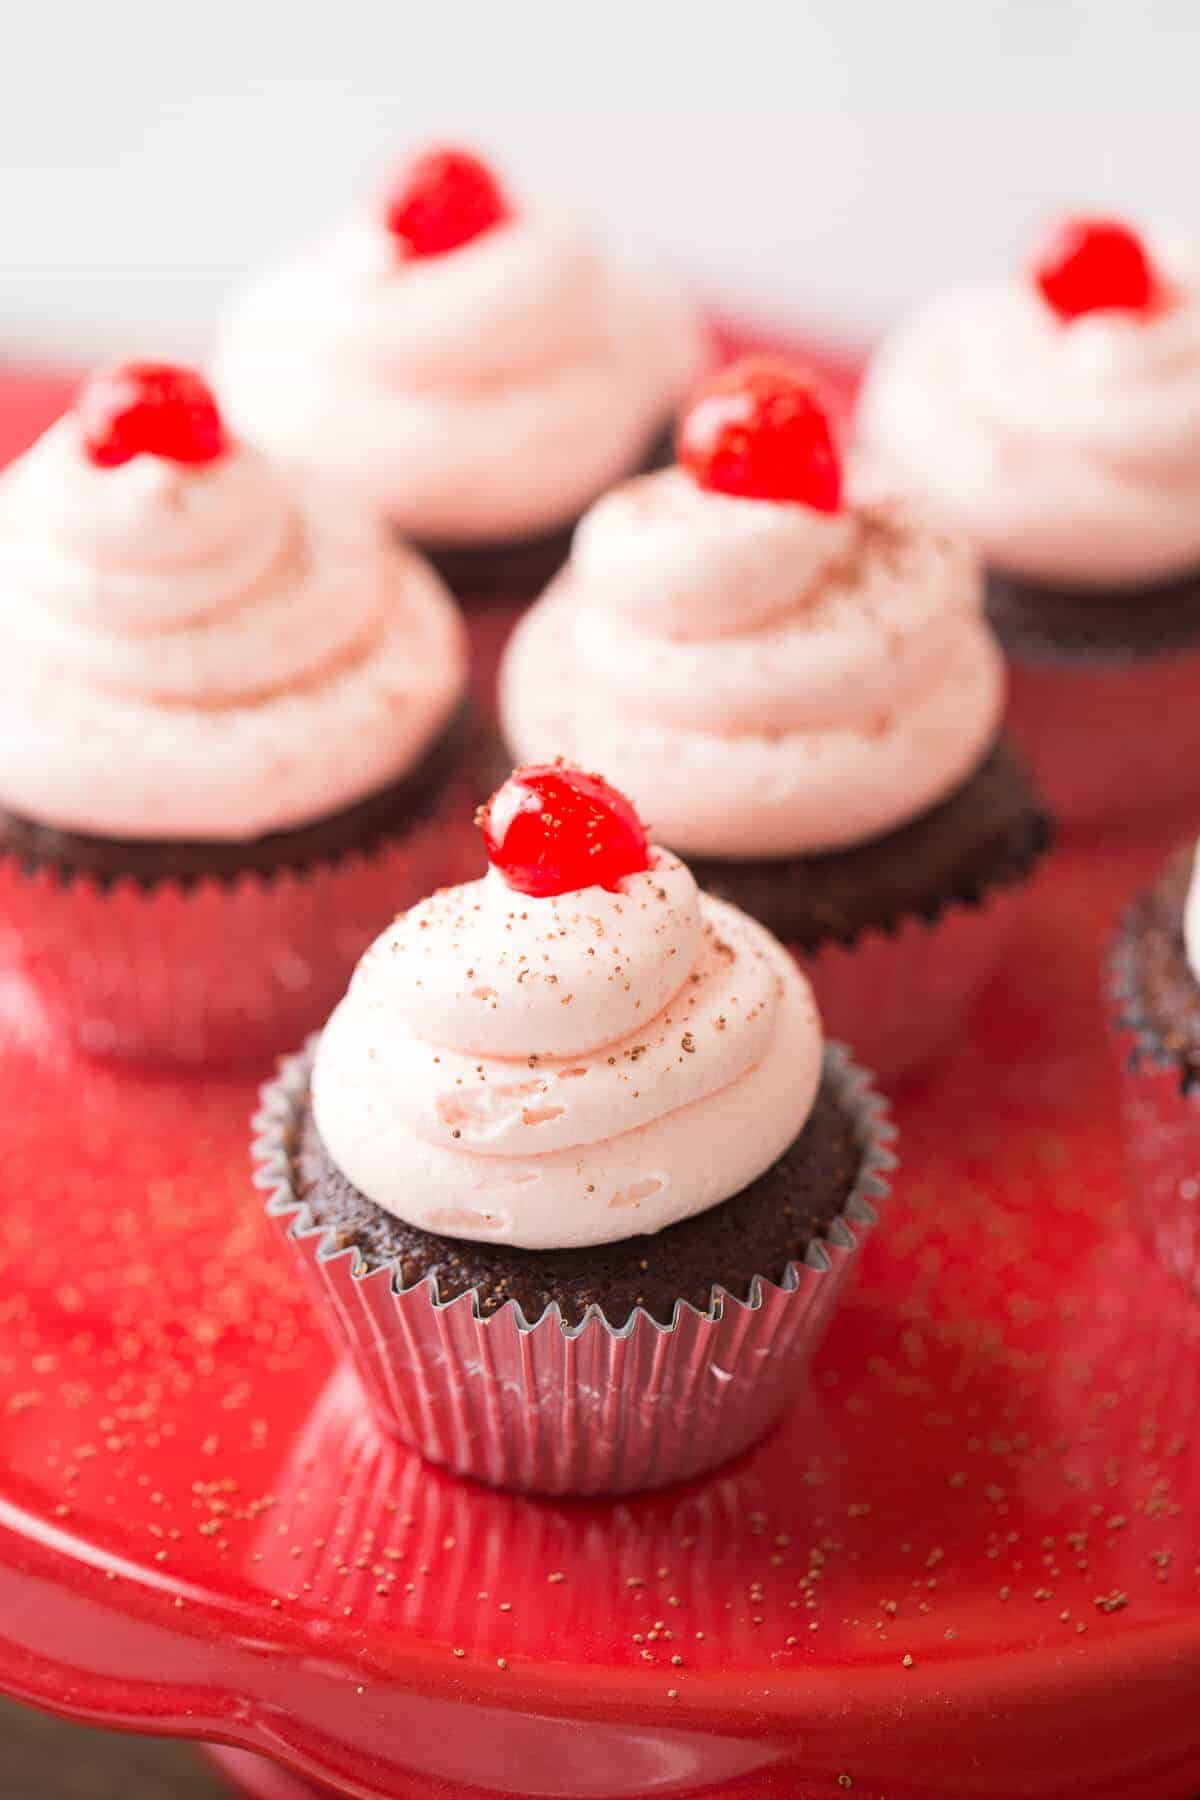 Cherry Coke and chocolate makes dynamic duo in these fun to make and eat chocolate cupcakes!